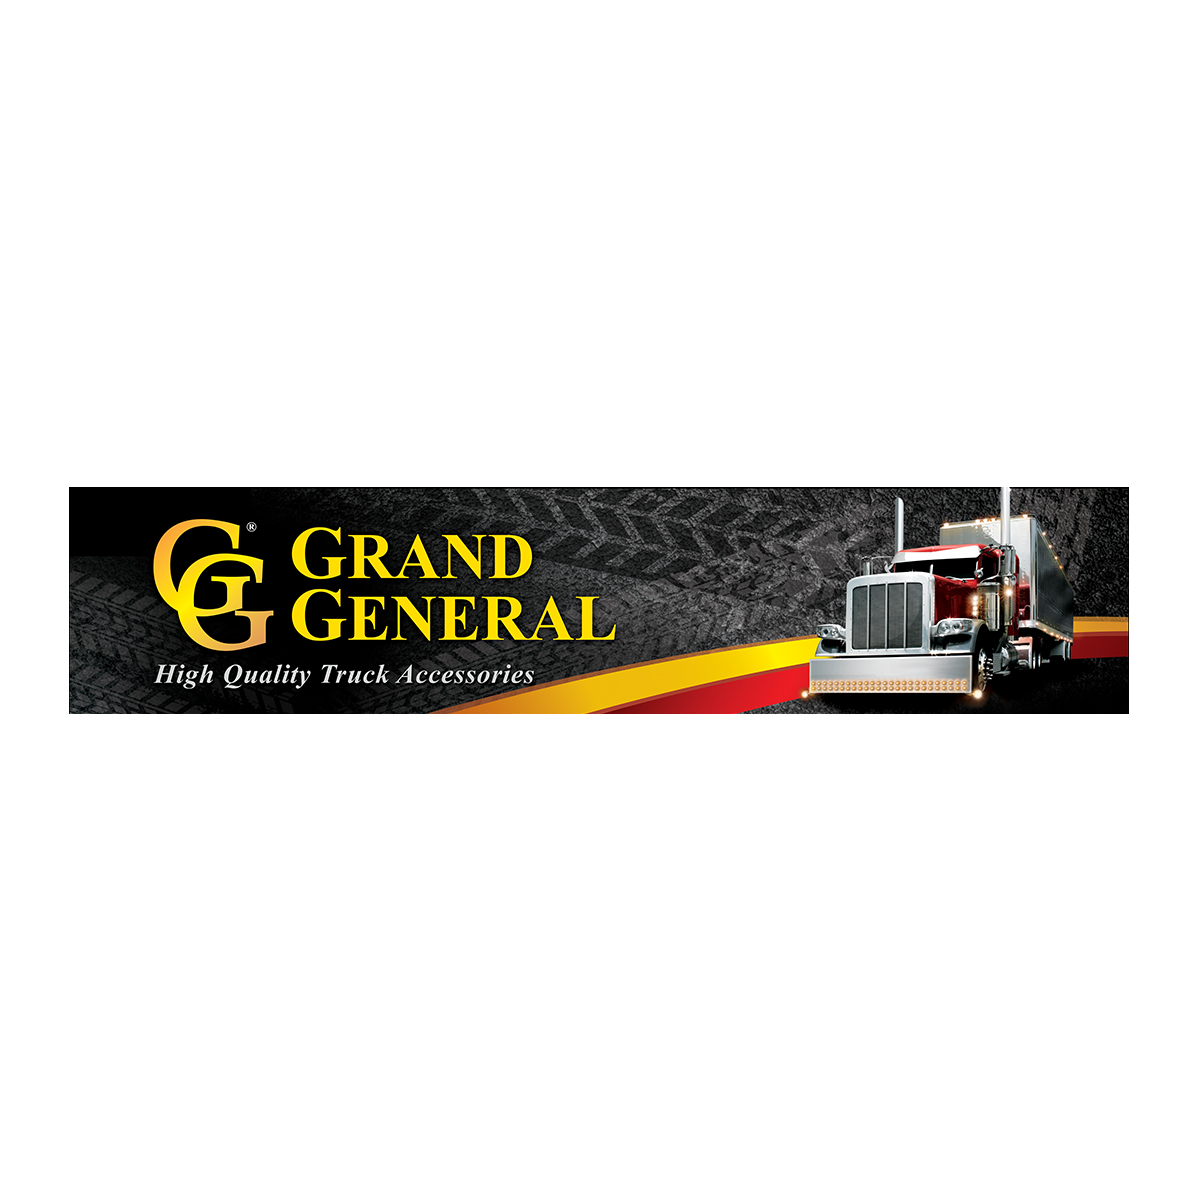 Grand General Banner 5' (W) x 1' (H)